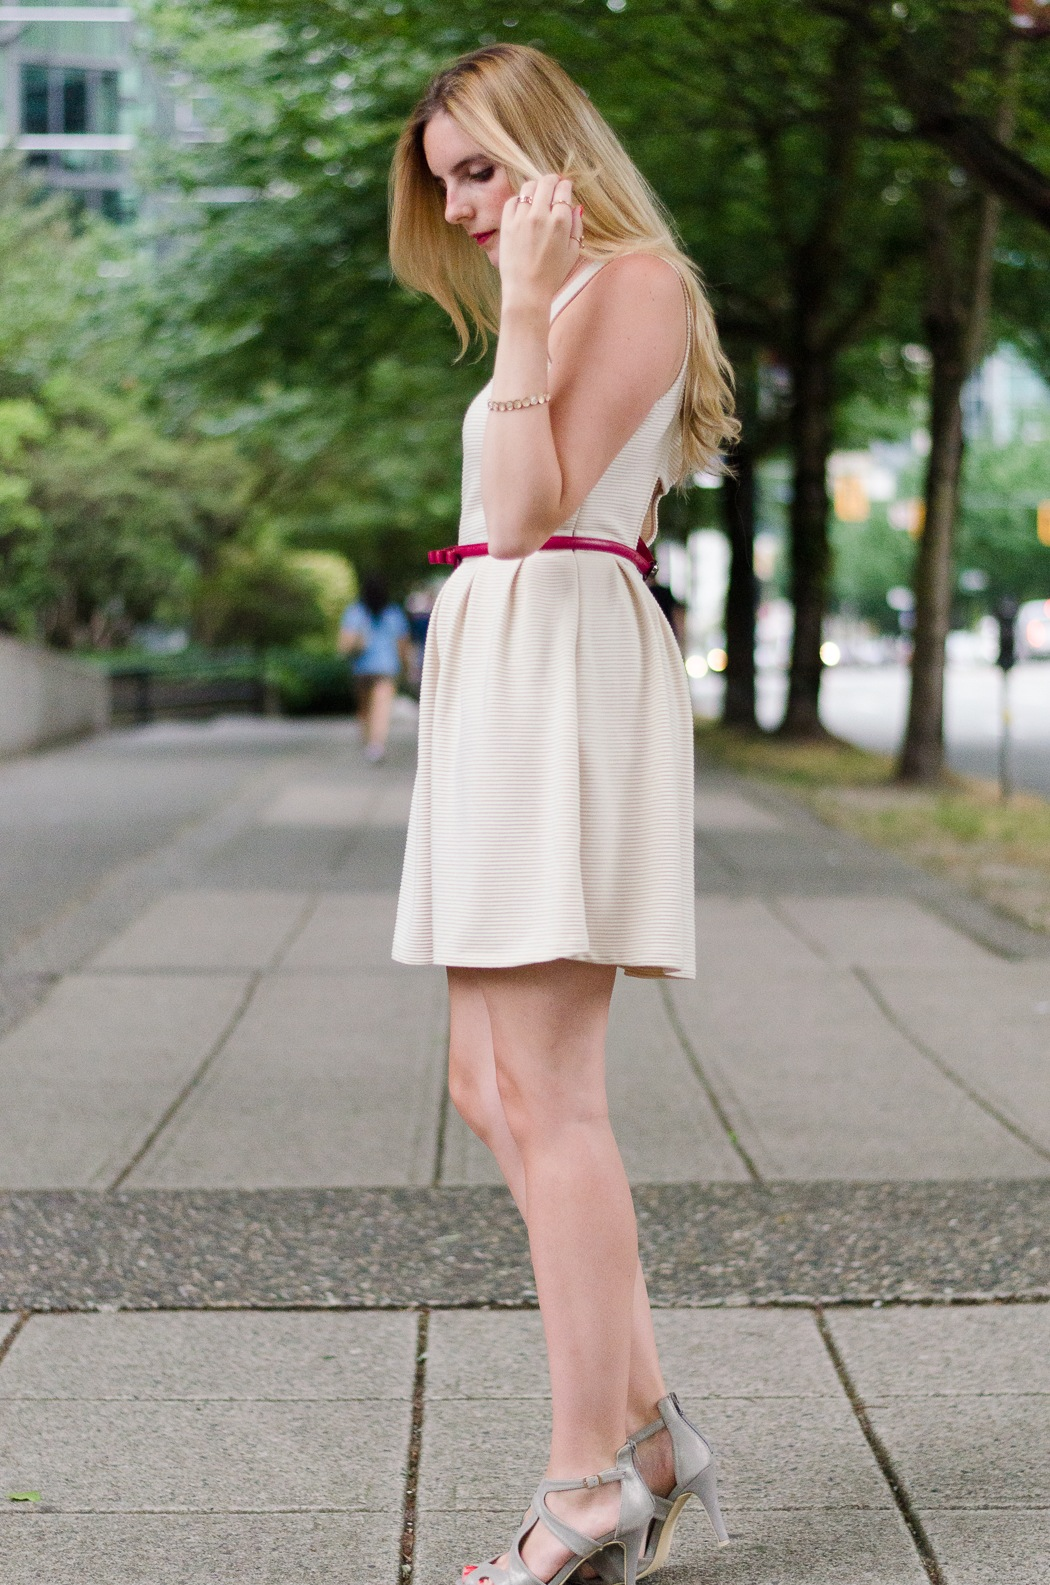 the urban umbrella style blog, vancouver style blog, vancouver fashion blog, vancouver lifestyle blog, vancouver health blog, vancouver fitness blog, vancouver travel blog, canadian faashion blog, canadian style blog, canadian lifestyle blog, canadian health blog, canadian fitness blog, canadian travel blog, bree aylwin,how to dress stylishly in the summer, how to look cute in hot weather, canada day style, things to do in vancouver on canada day, vancouver fashion, vancouver street style, canadian street style, best style blogs, best lifestyle blogs, best fitness blogs, best health blogs, best travel blogs, top fashion blogs, top style blogs, top lifestyle blogs, top fitness blogs, top health blogs, top travel blogs